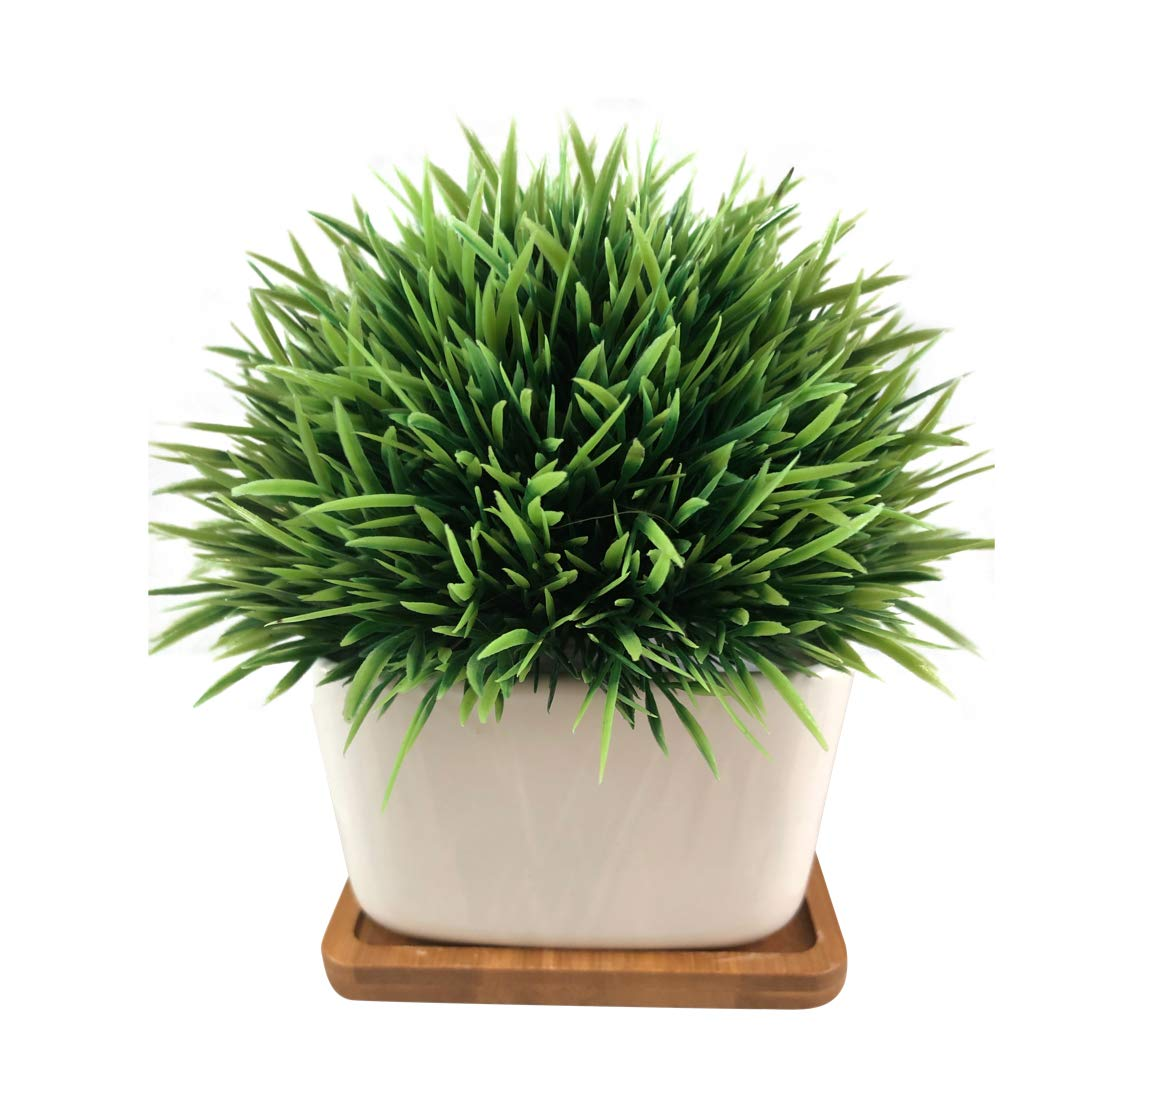 Fake Plant for Bathroom/Home Decor, Small Artificial Faux Greenery ...